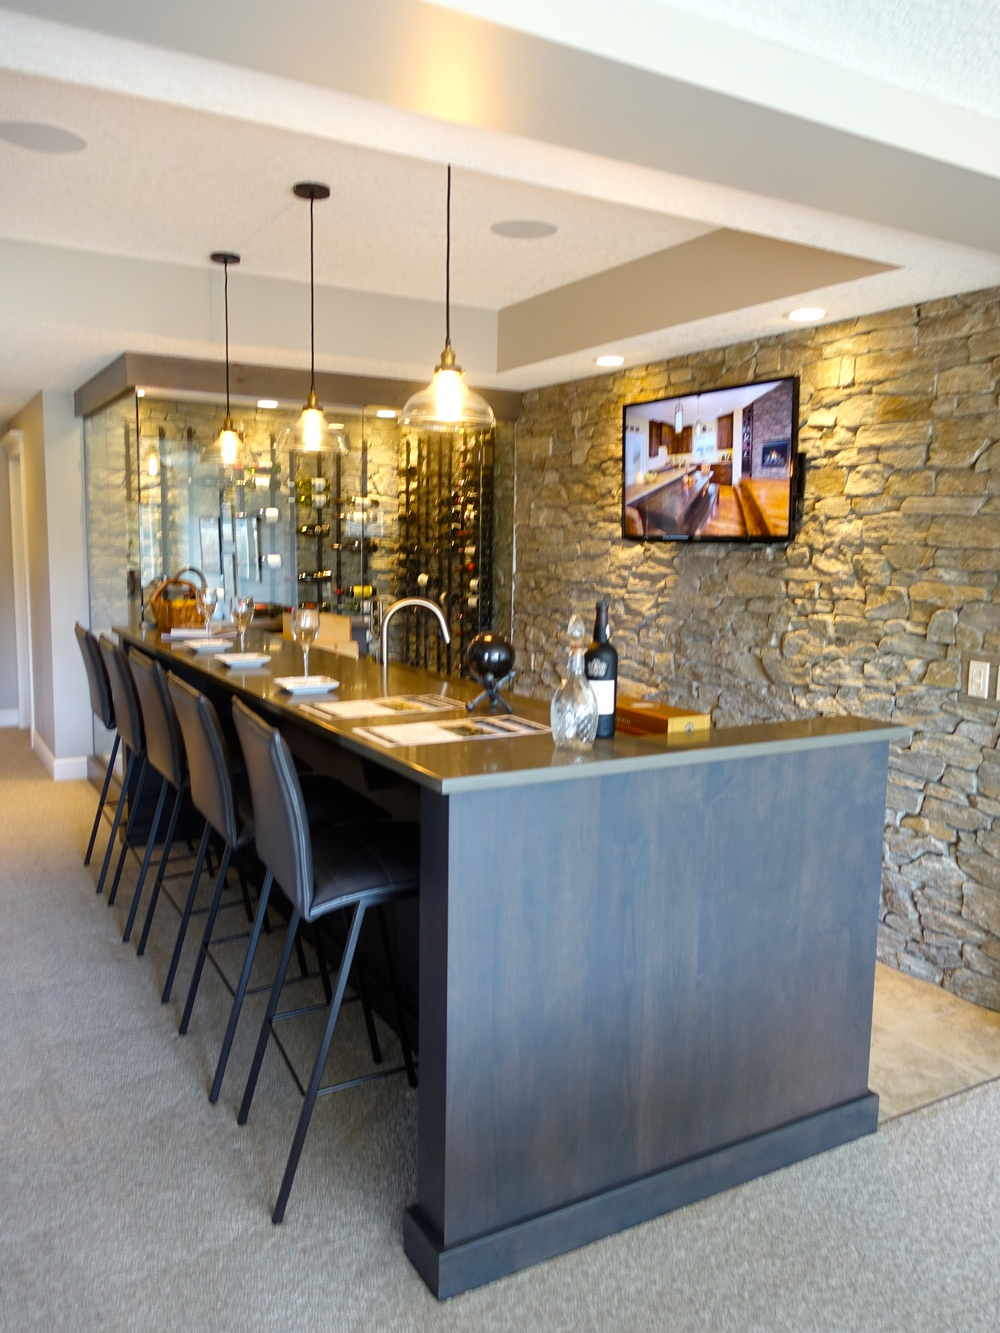 Enjoy your privatewine cellar and tasting bar with friends.